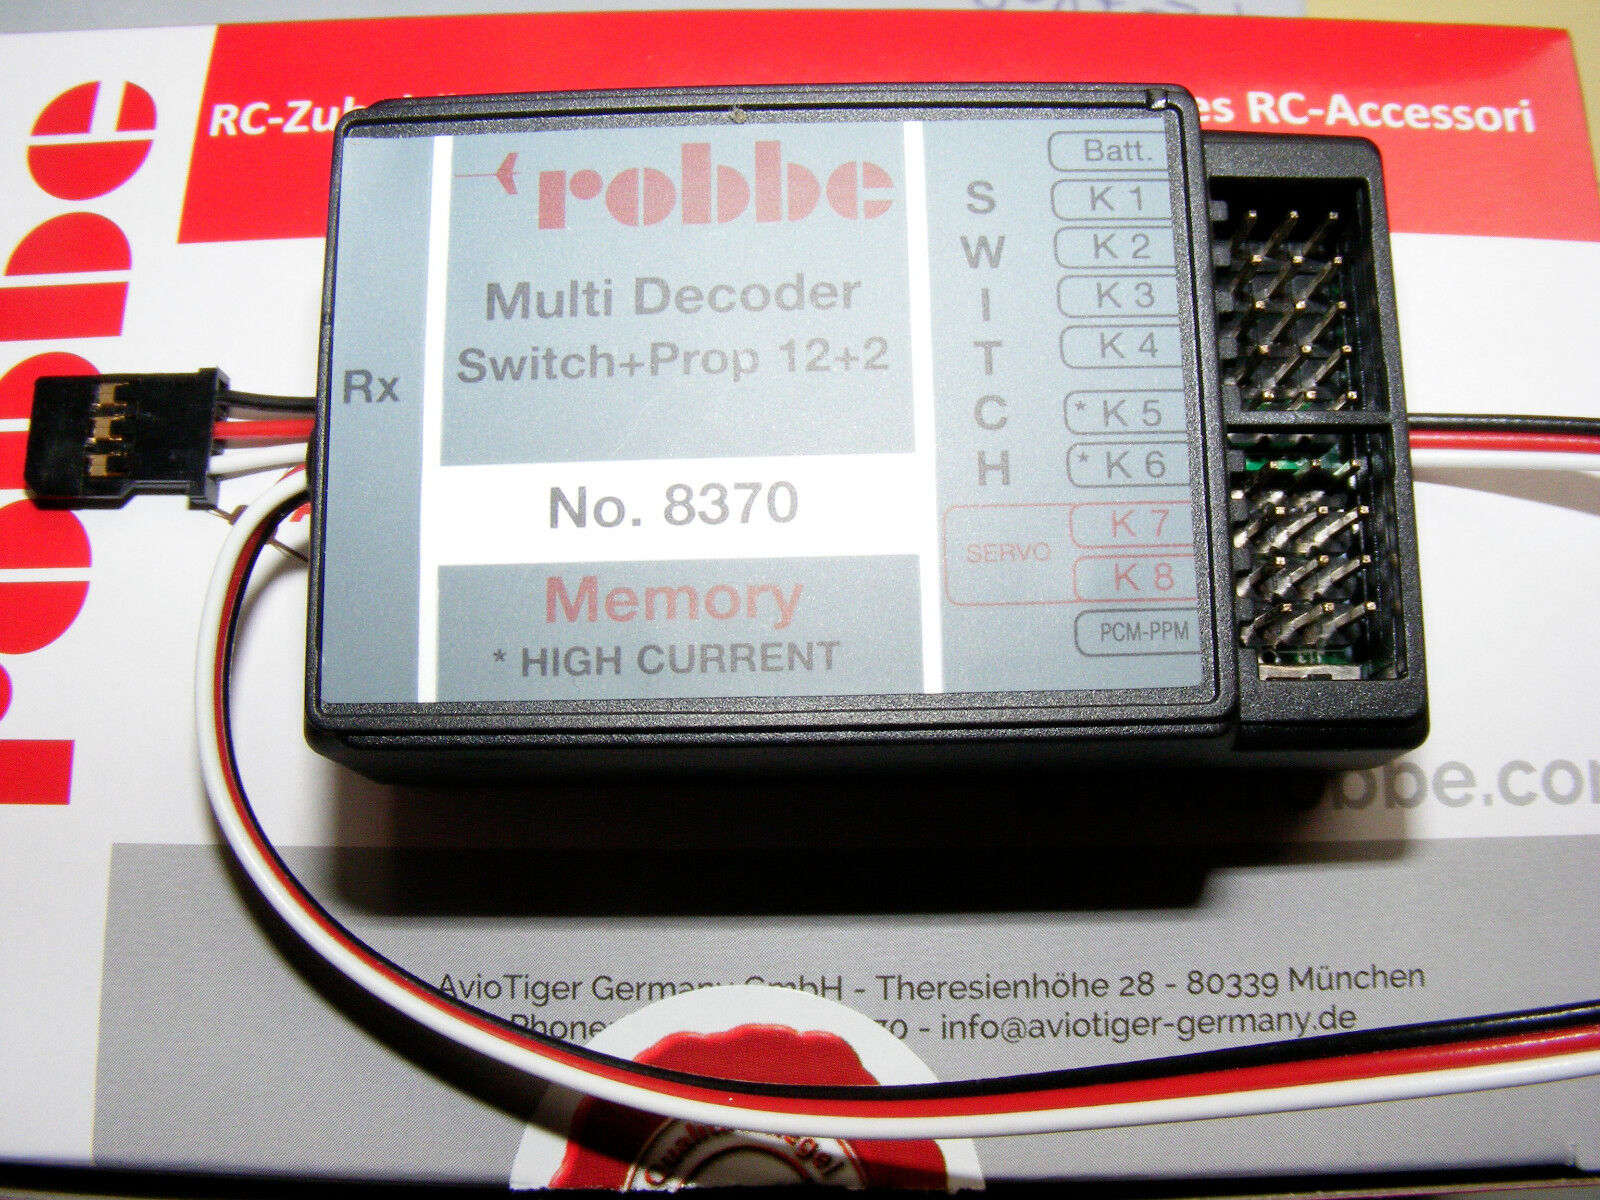 Robbe multi-Switch 12+2 descodificador Memory Art. 8370